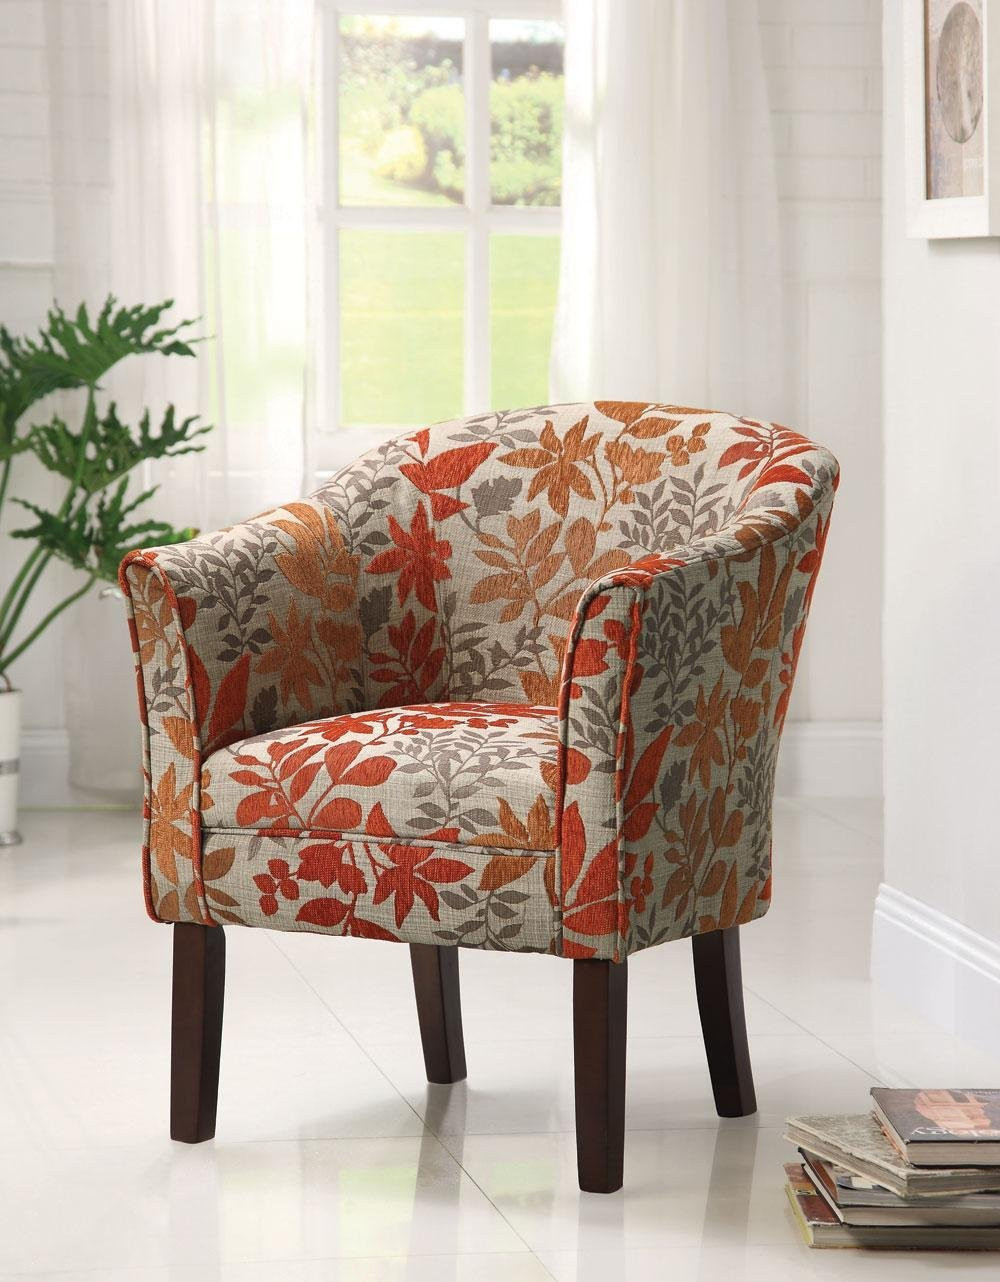 Best ideas about Family Room Chairs . Save or Pin Accent chairs for living room 23 reasons to Now.